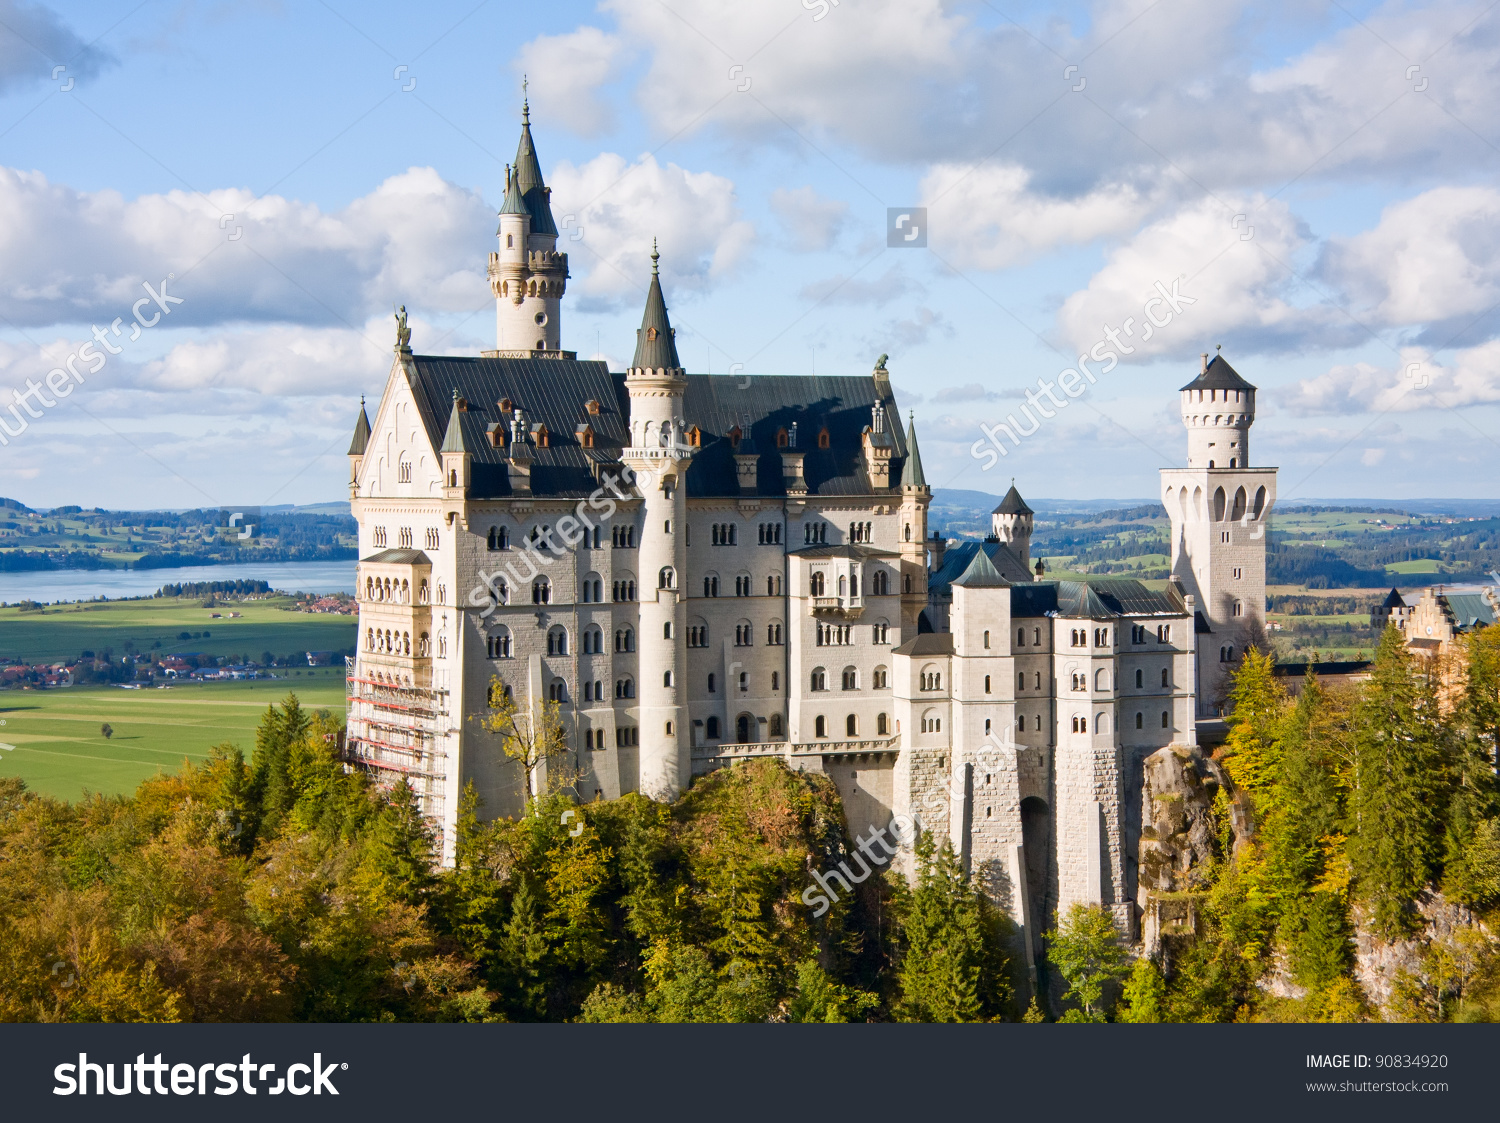 Famous Neuschwanstein Castle Germany Bavaria Built Stock Photo.